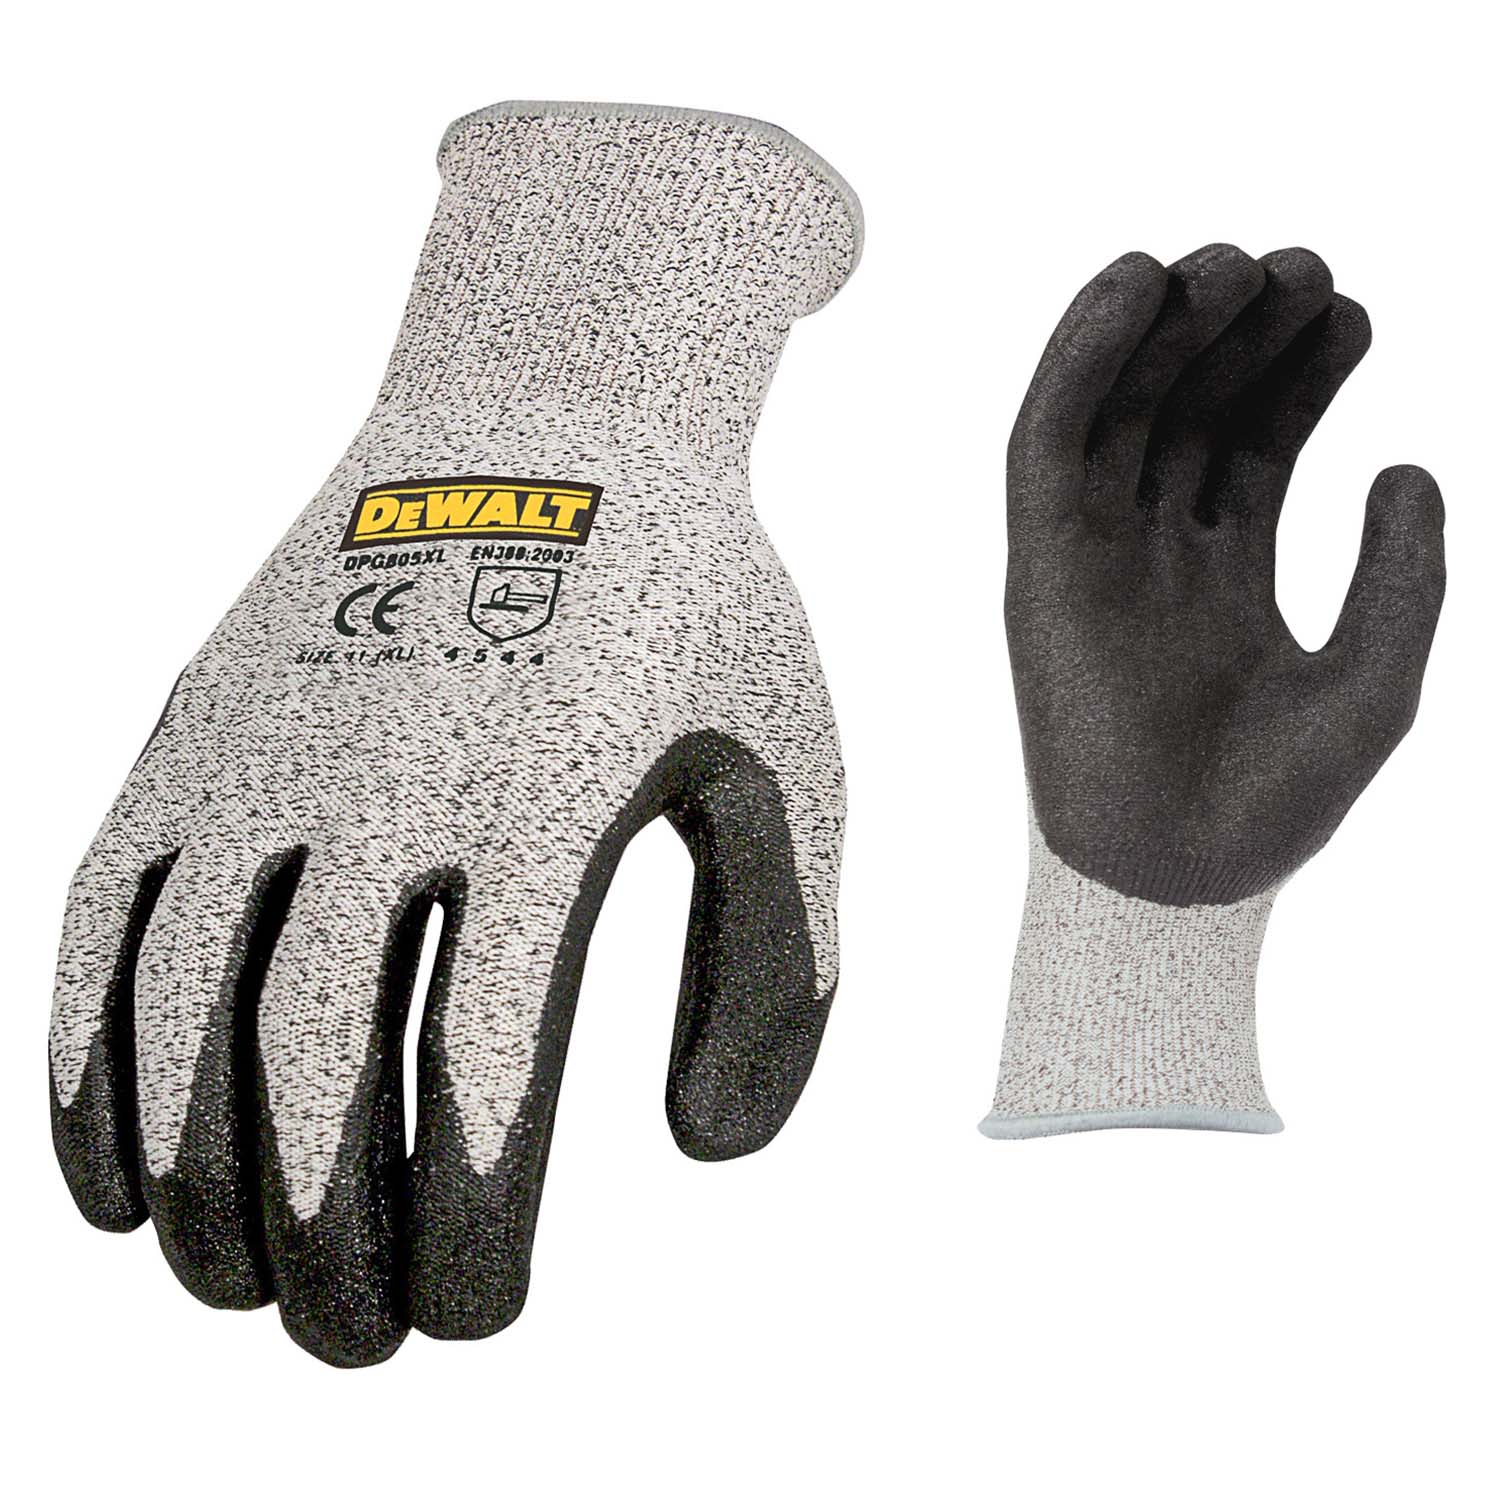 DEWALT DPG805 Cut Protection Level A4 Work Glove